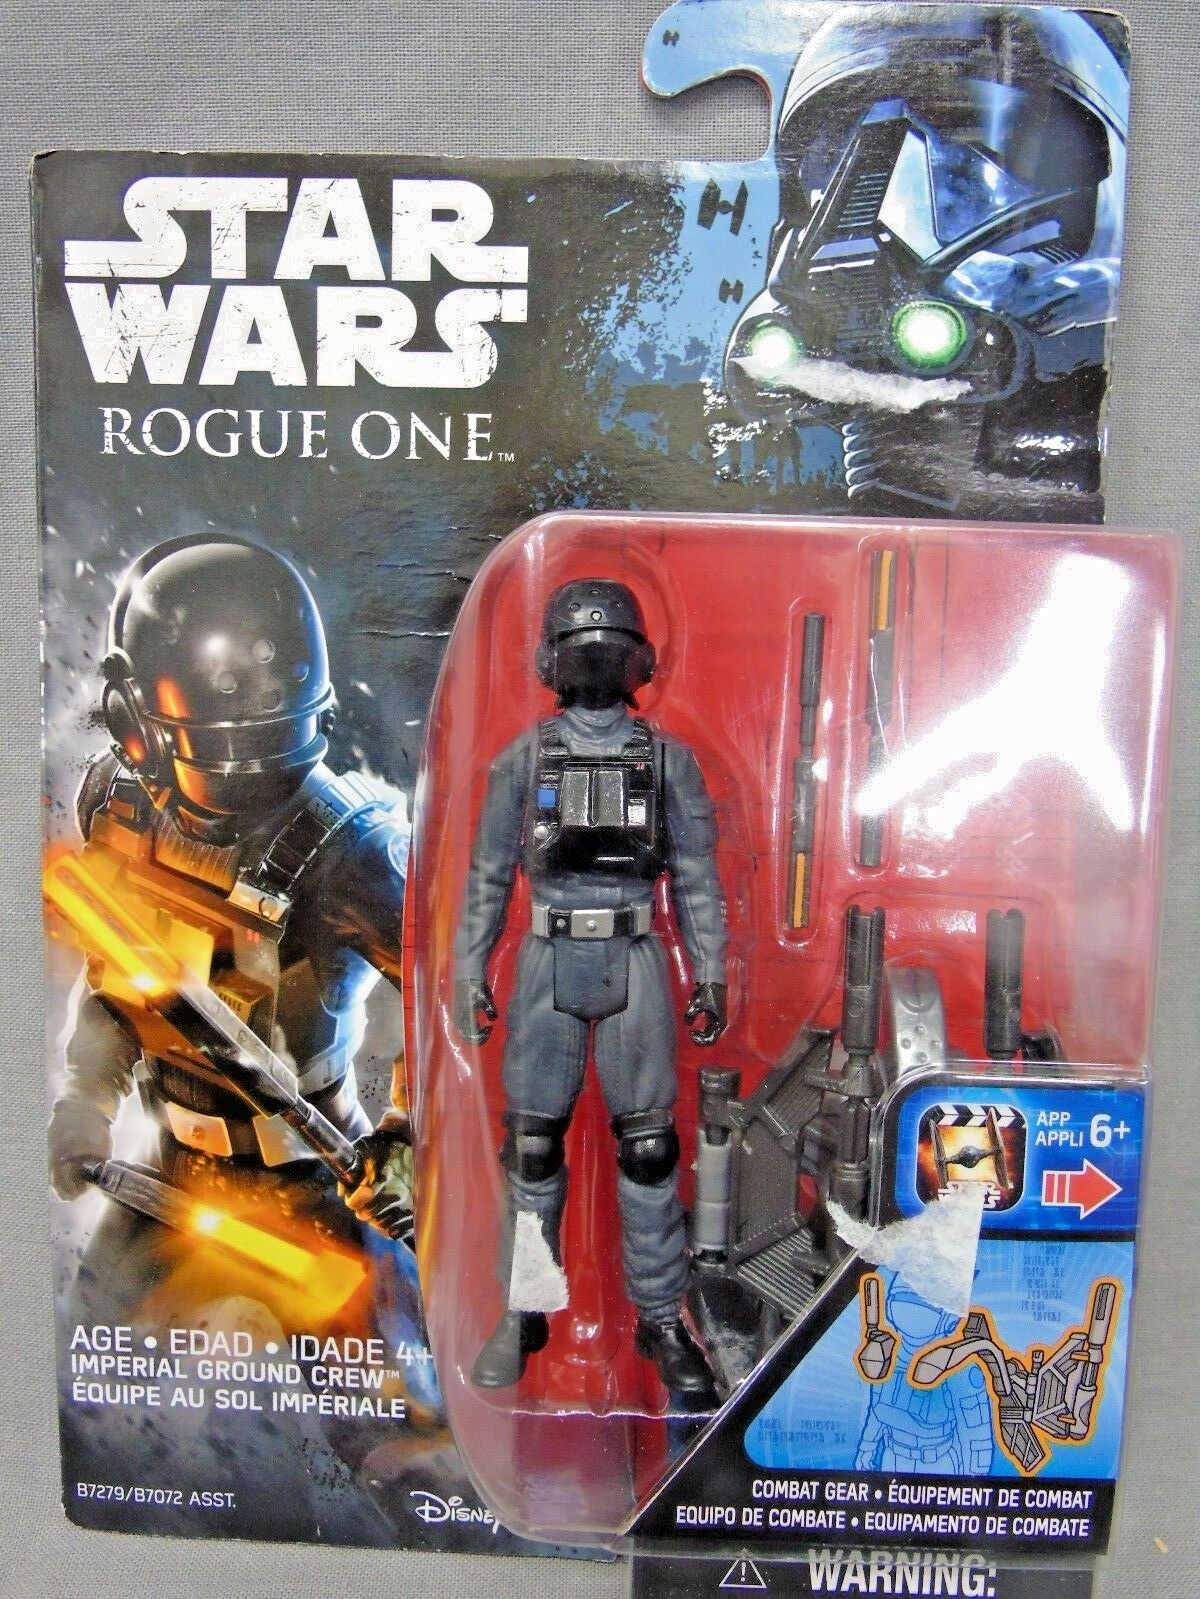 Star Wars Rogue One Imperial Ground Crew Figure 3.75 Inch Wave 1 New!